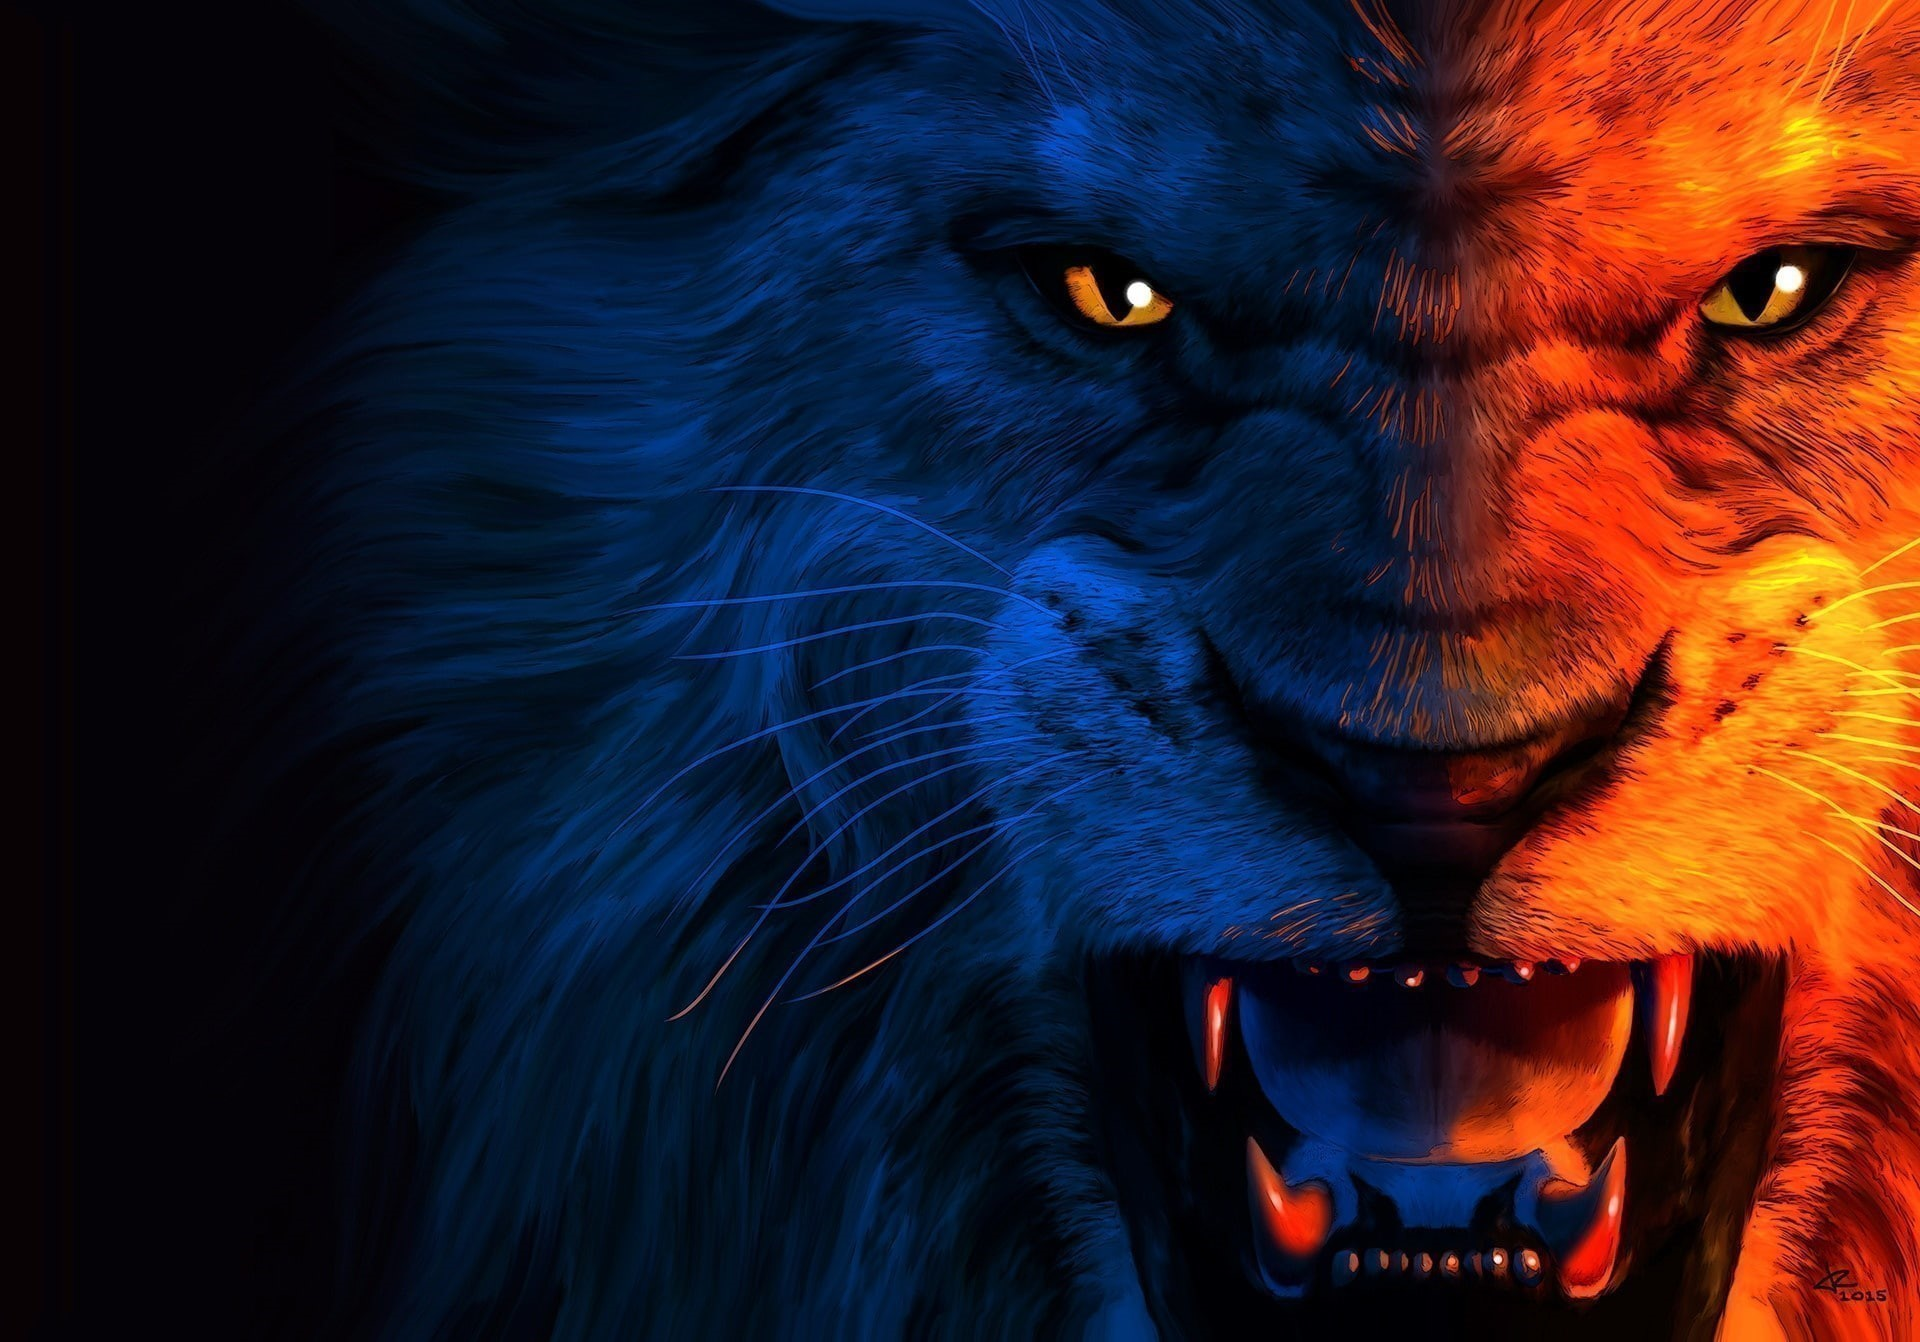 Angry Lion Hd Desktop Wallpaper Wallpaper Download High Resolution 4k Wallpaper